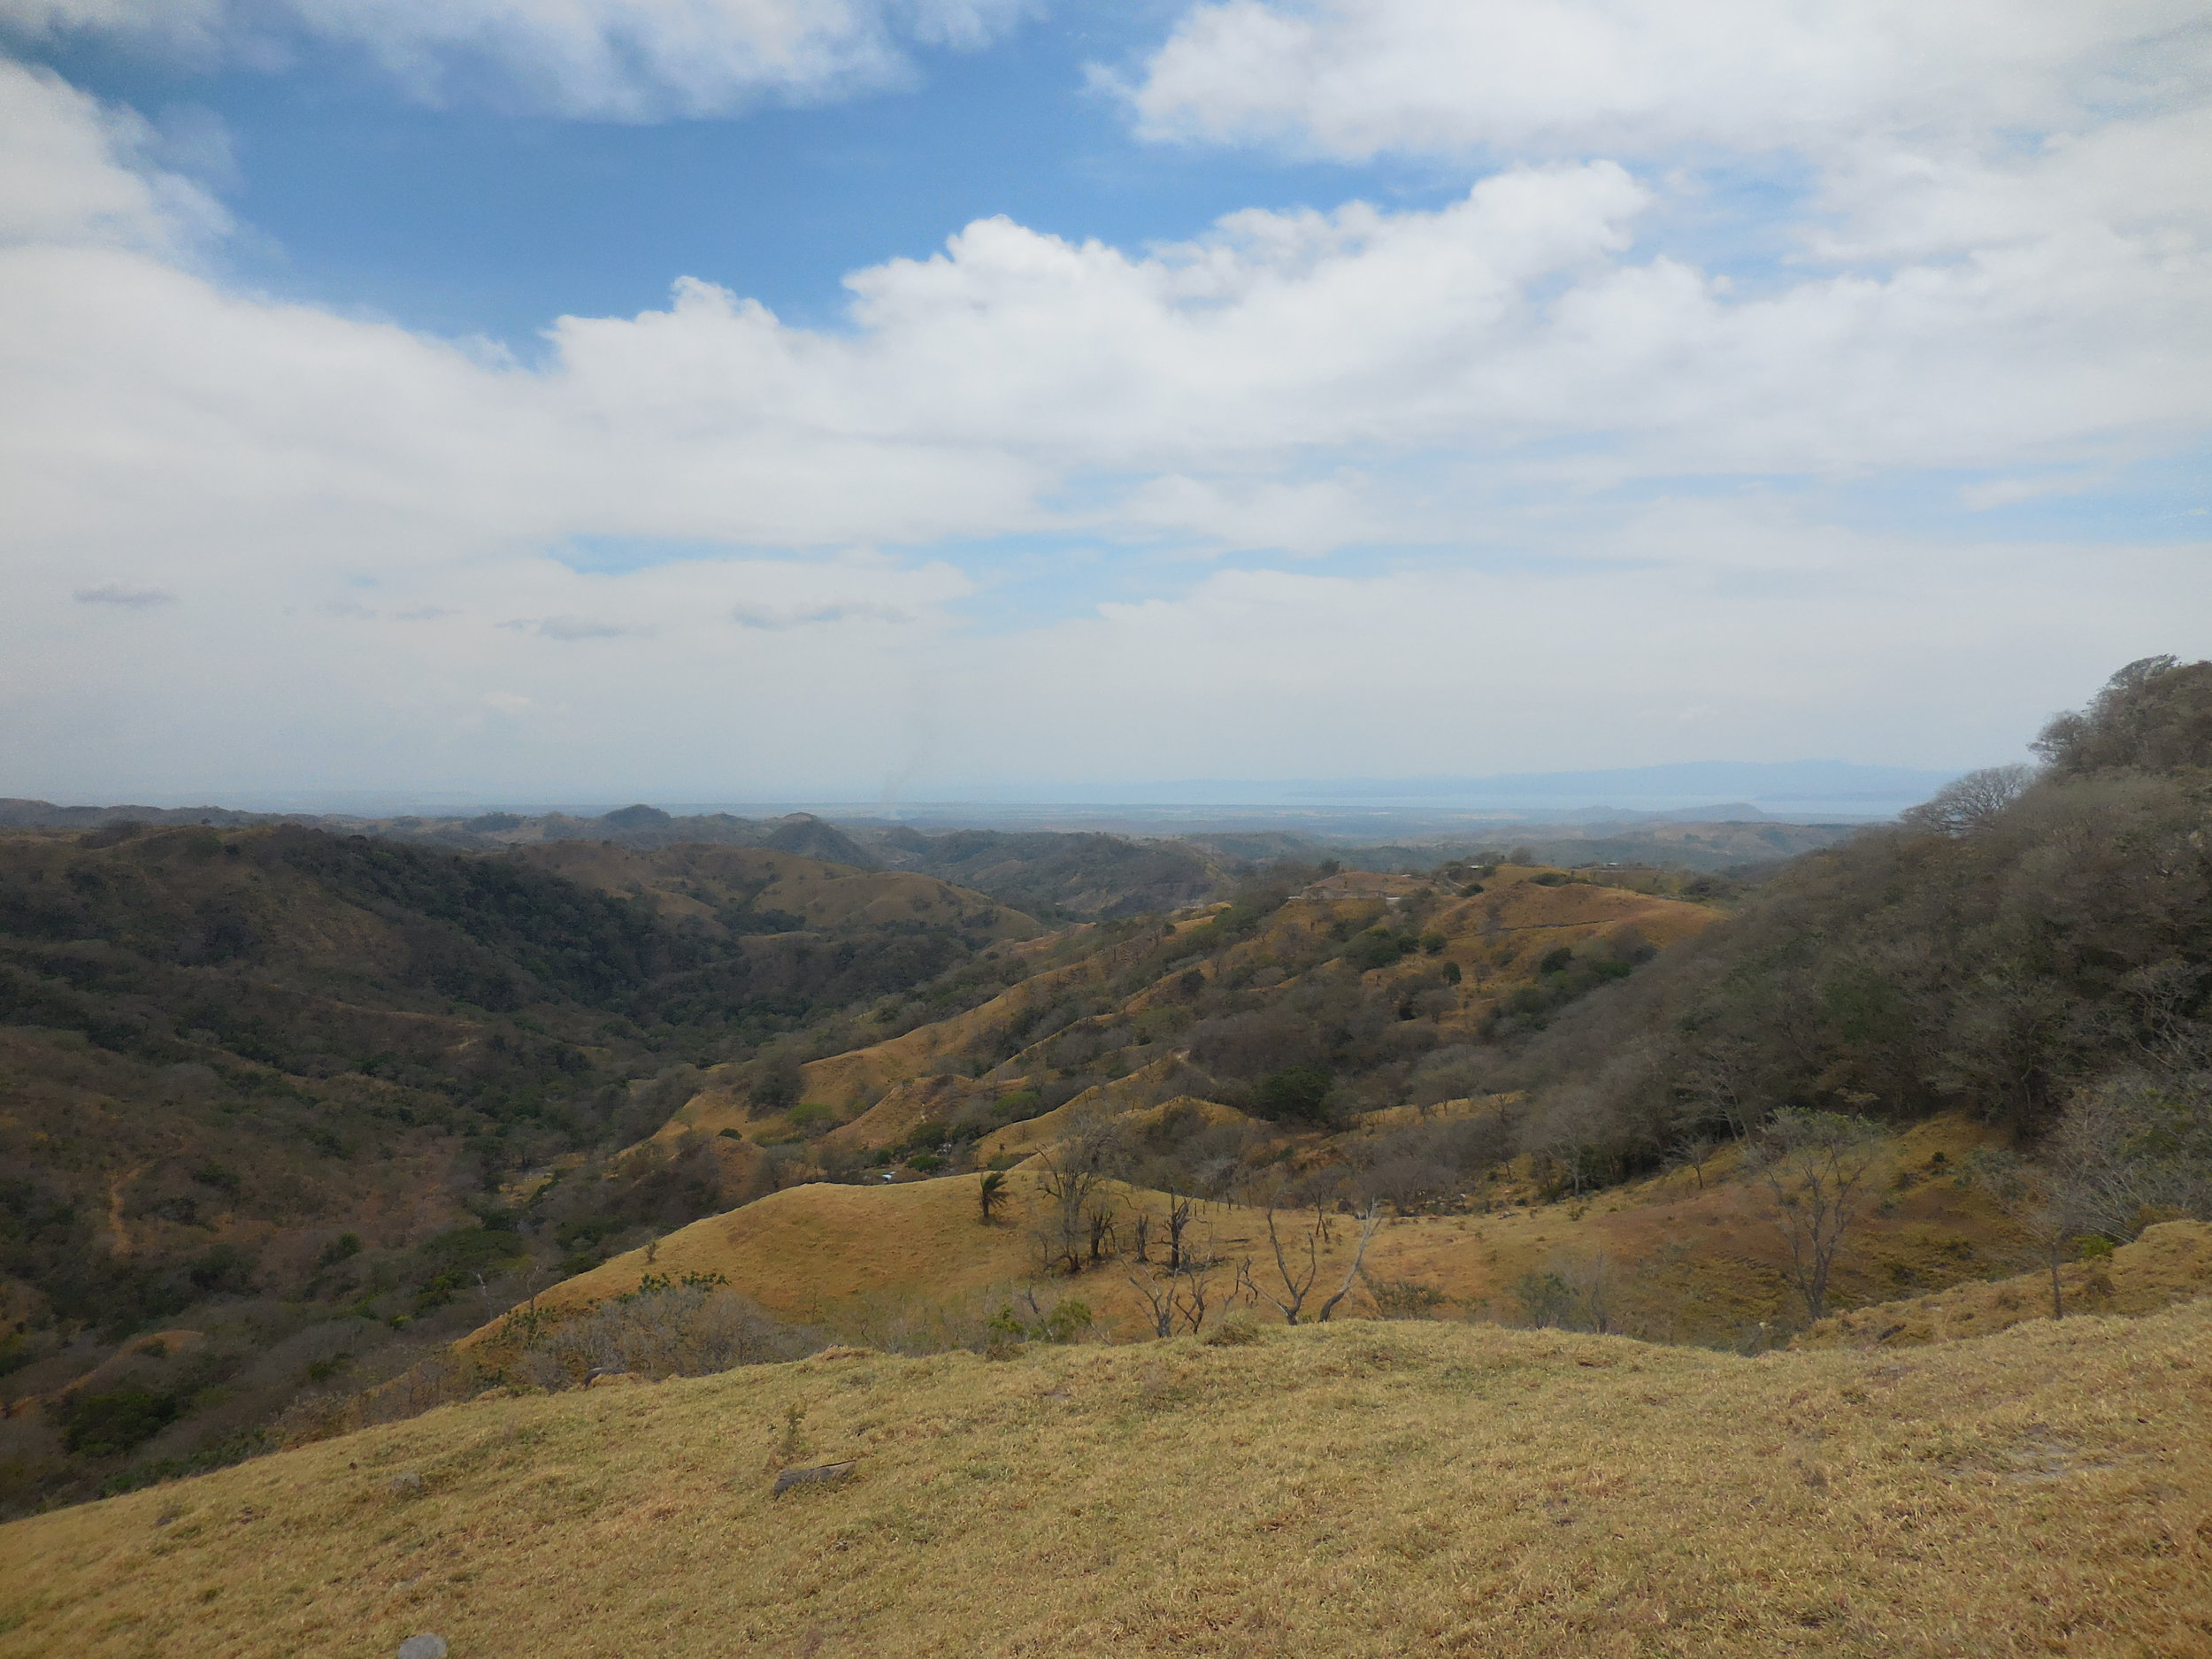 View from a mountain close to Monte Verde